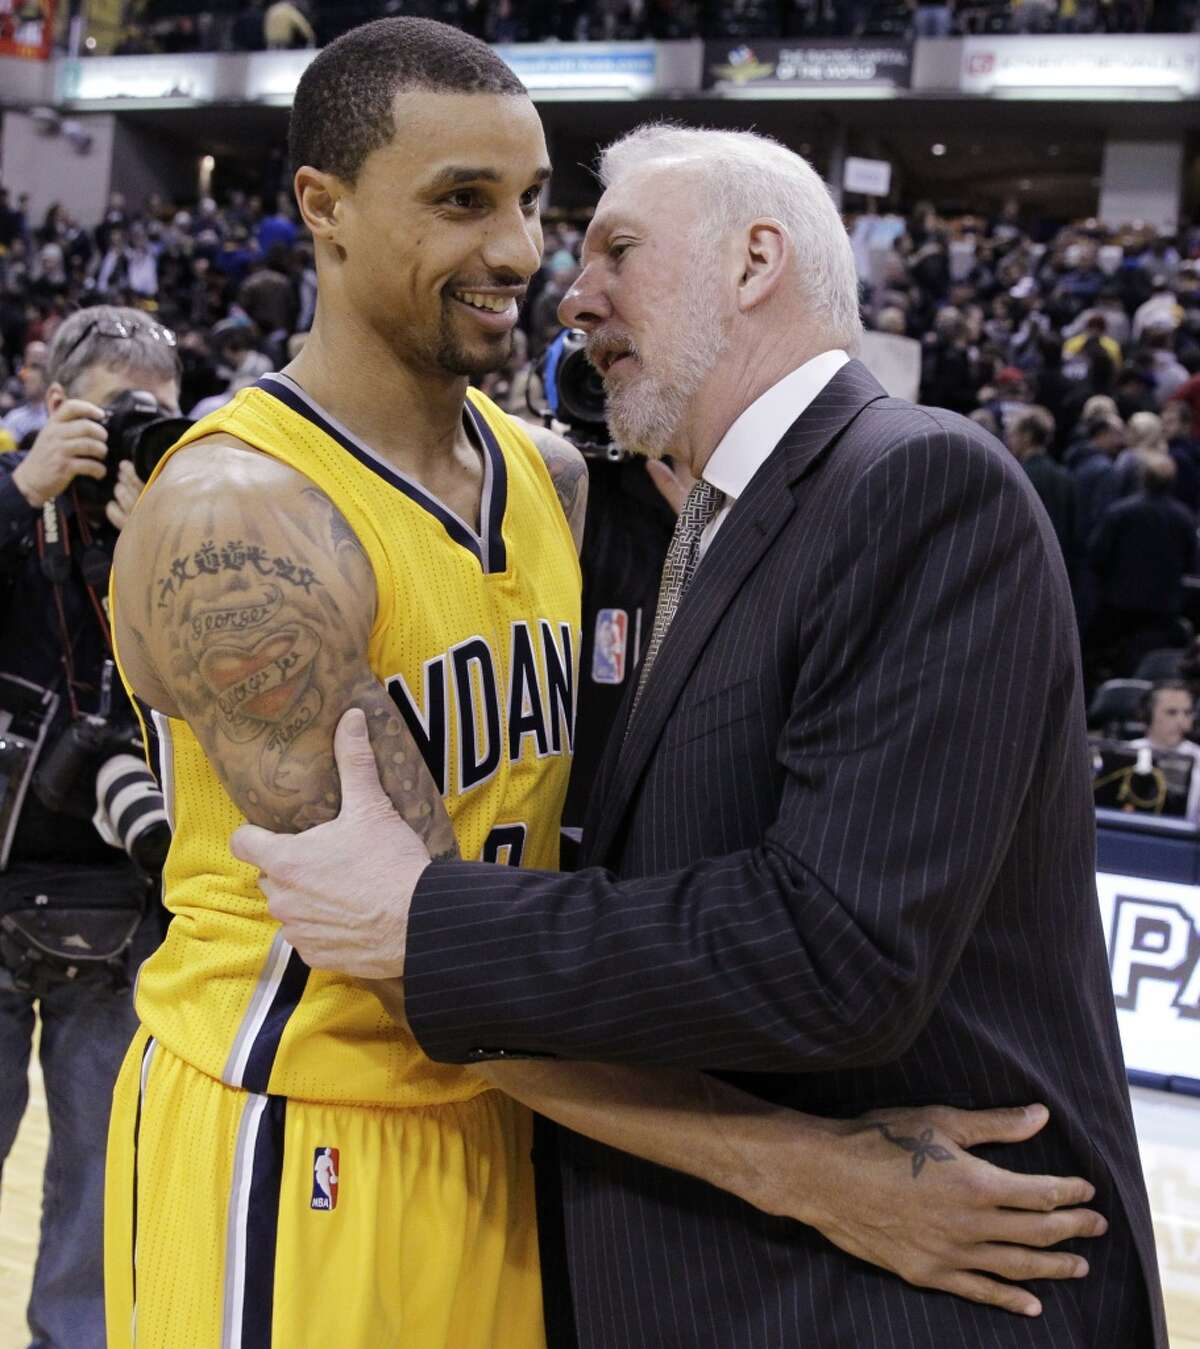 Indiana Pacers' George Hill (3) congratulates San Antonio Spurs head coach Gregg Popovich following an NBA basketball game Monday, Feb. 9, 2015, in Indianapolis. San Antonio won the game 95-93. With the win Popvicch joined the 1000-win club.(AP Photo/Darron Cummings)